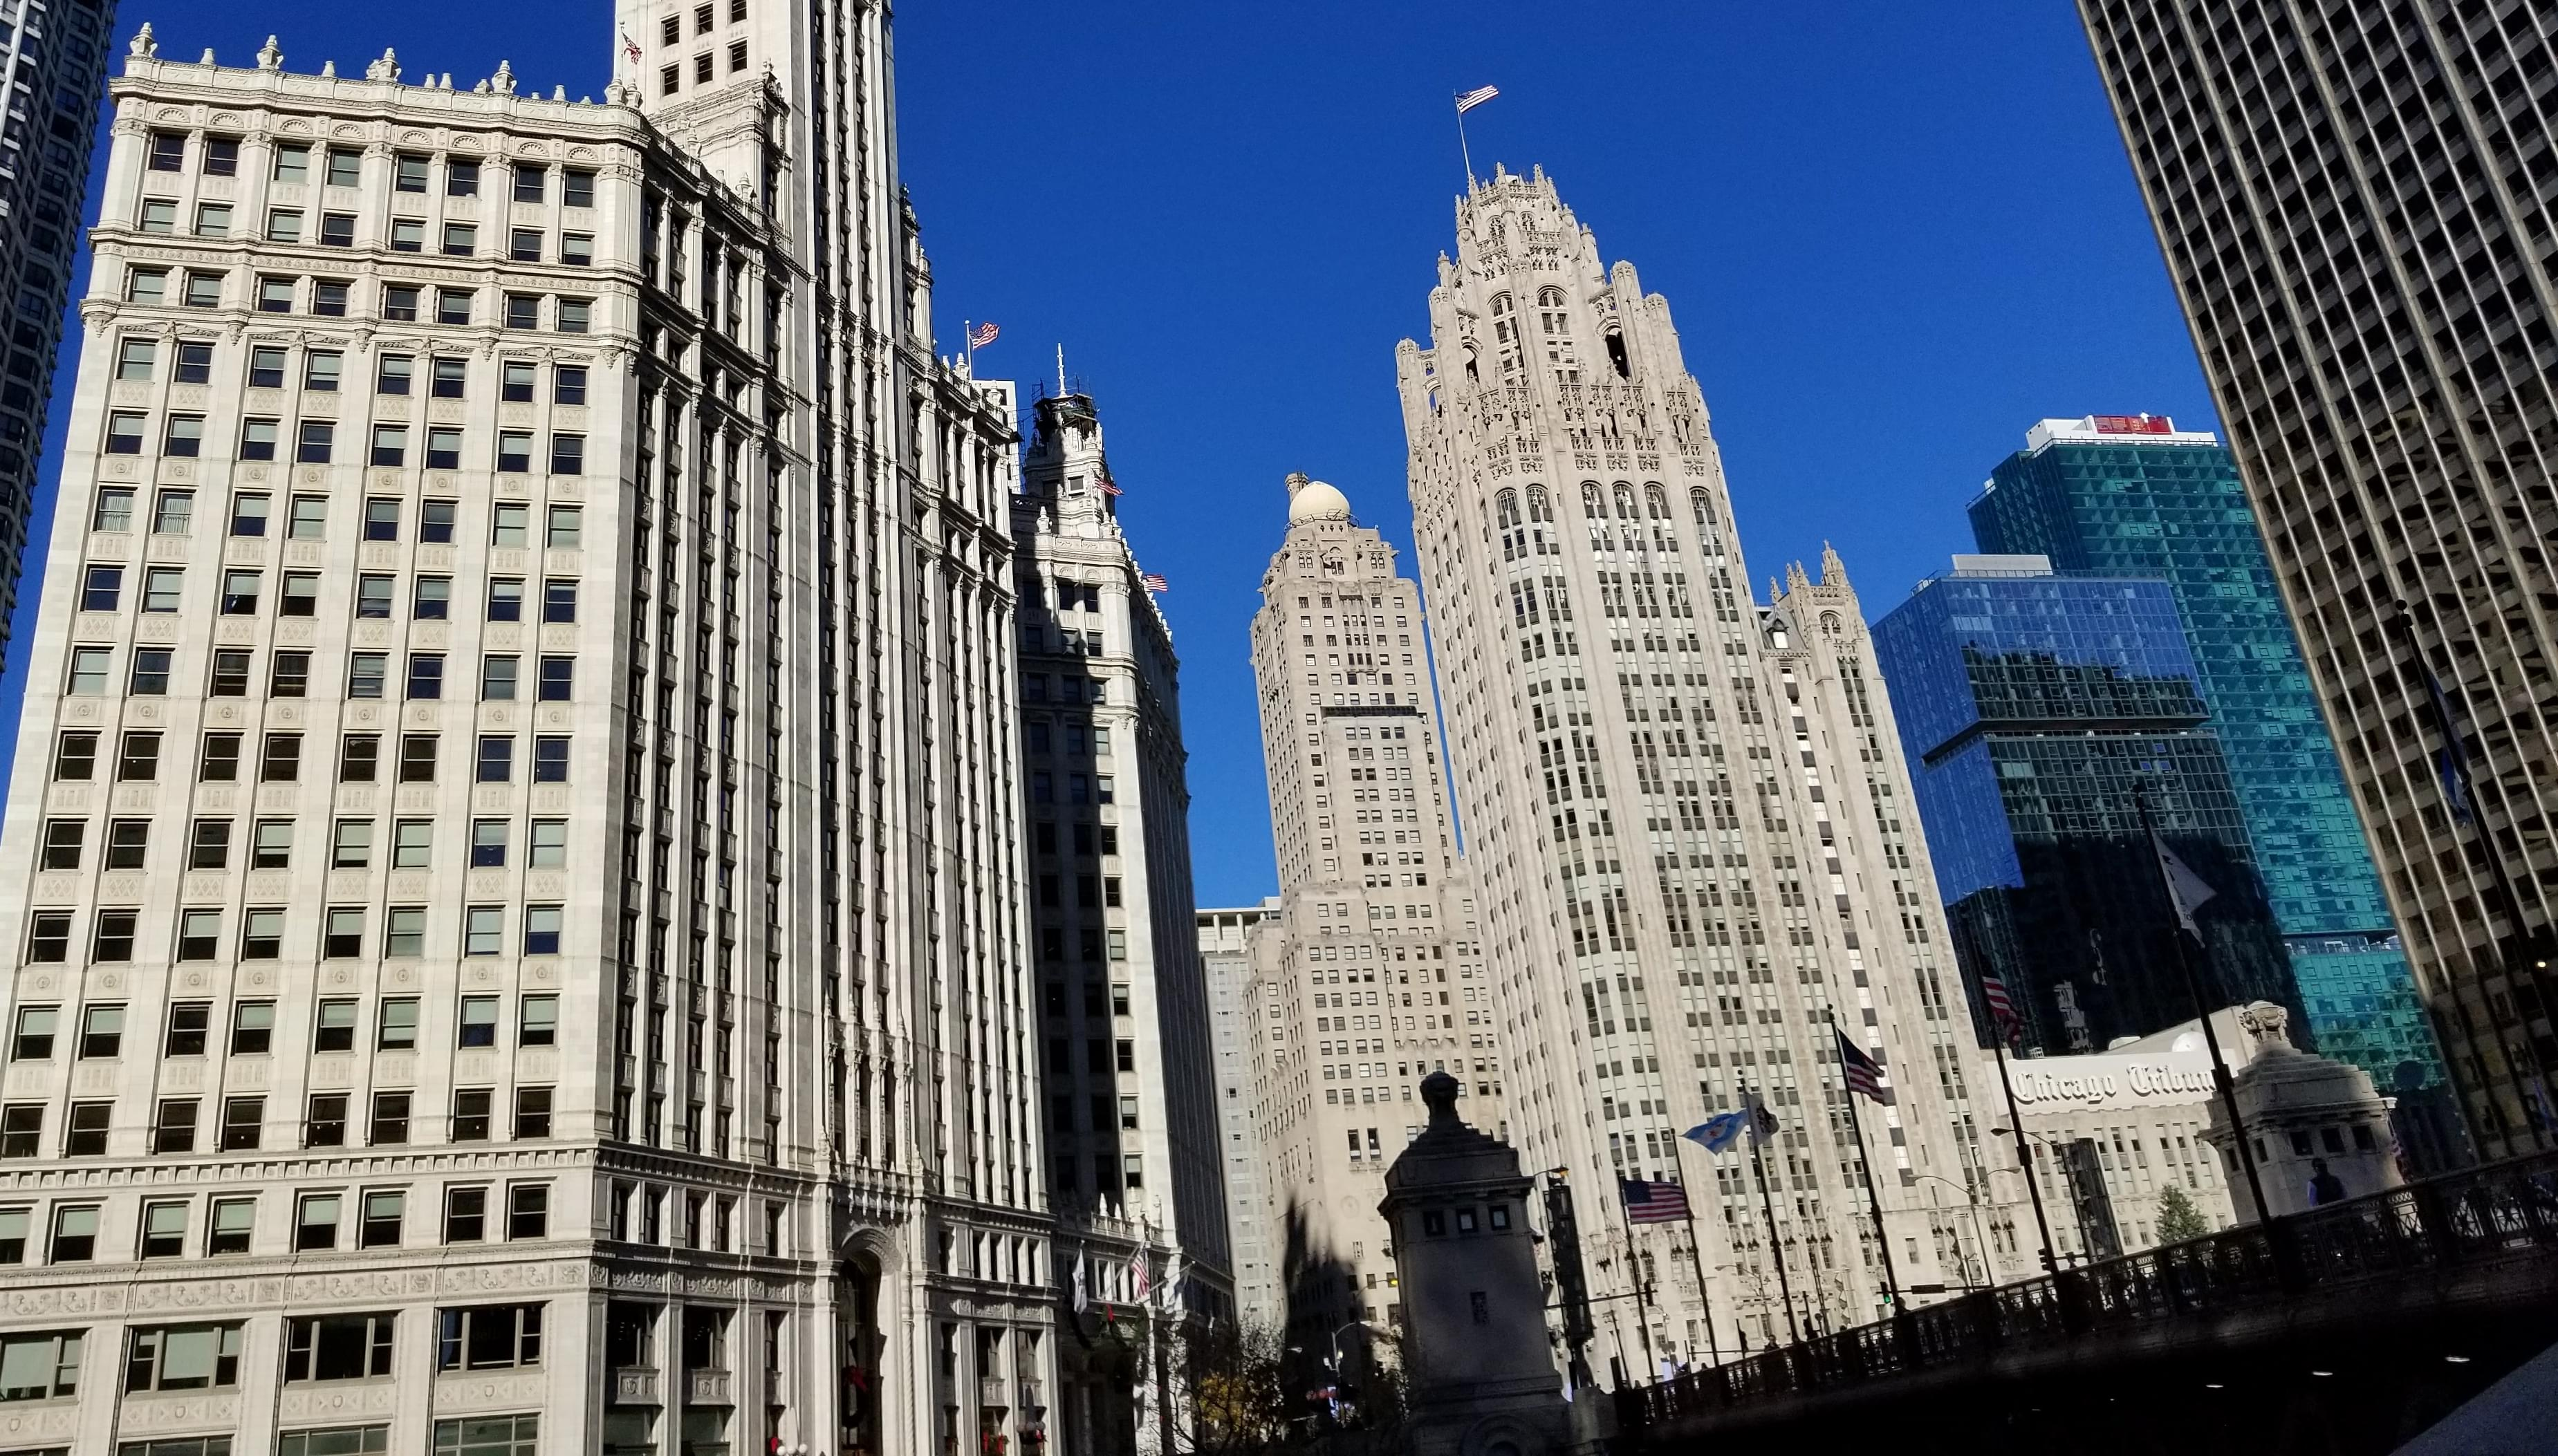 Chicago's one of the 'hardest-working cities' in U.S.